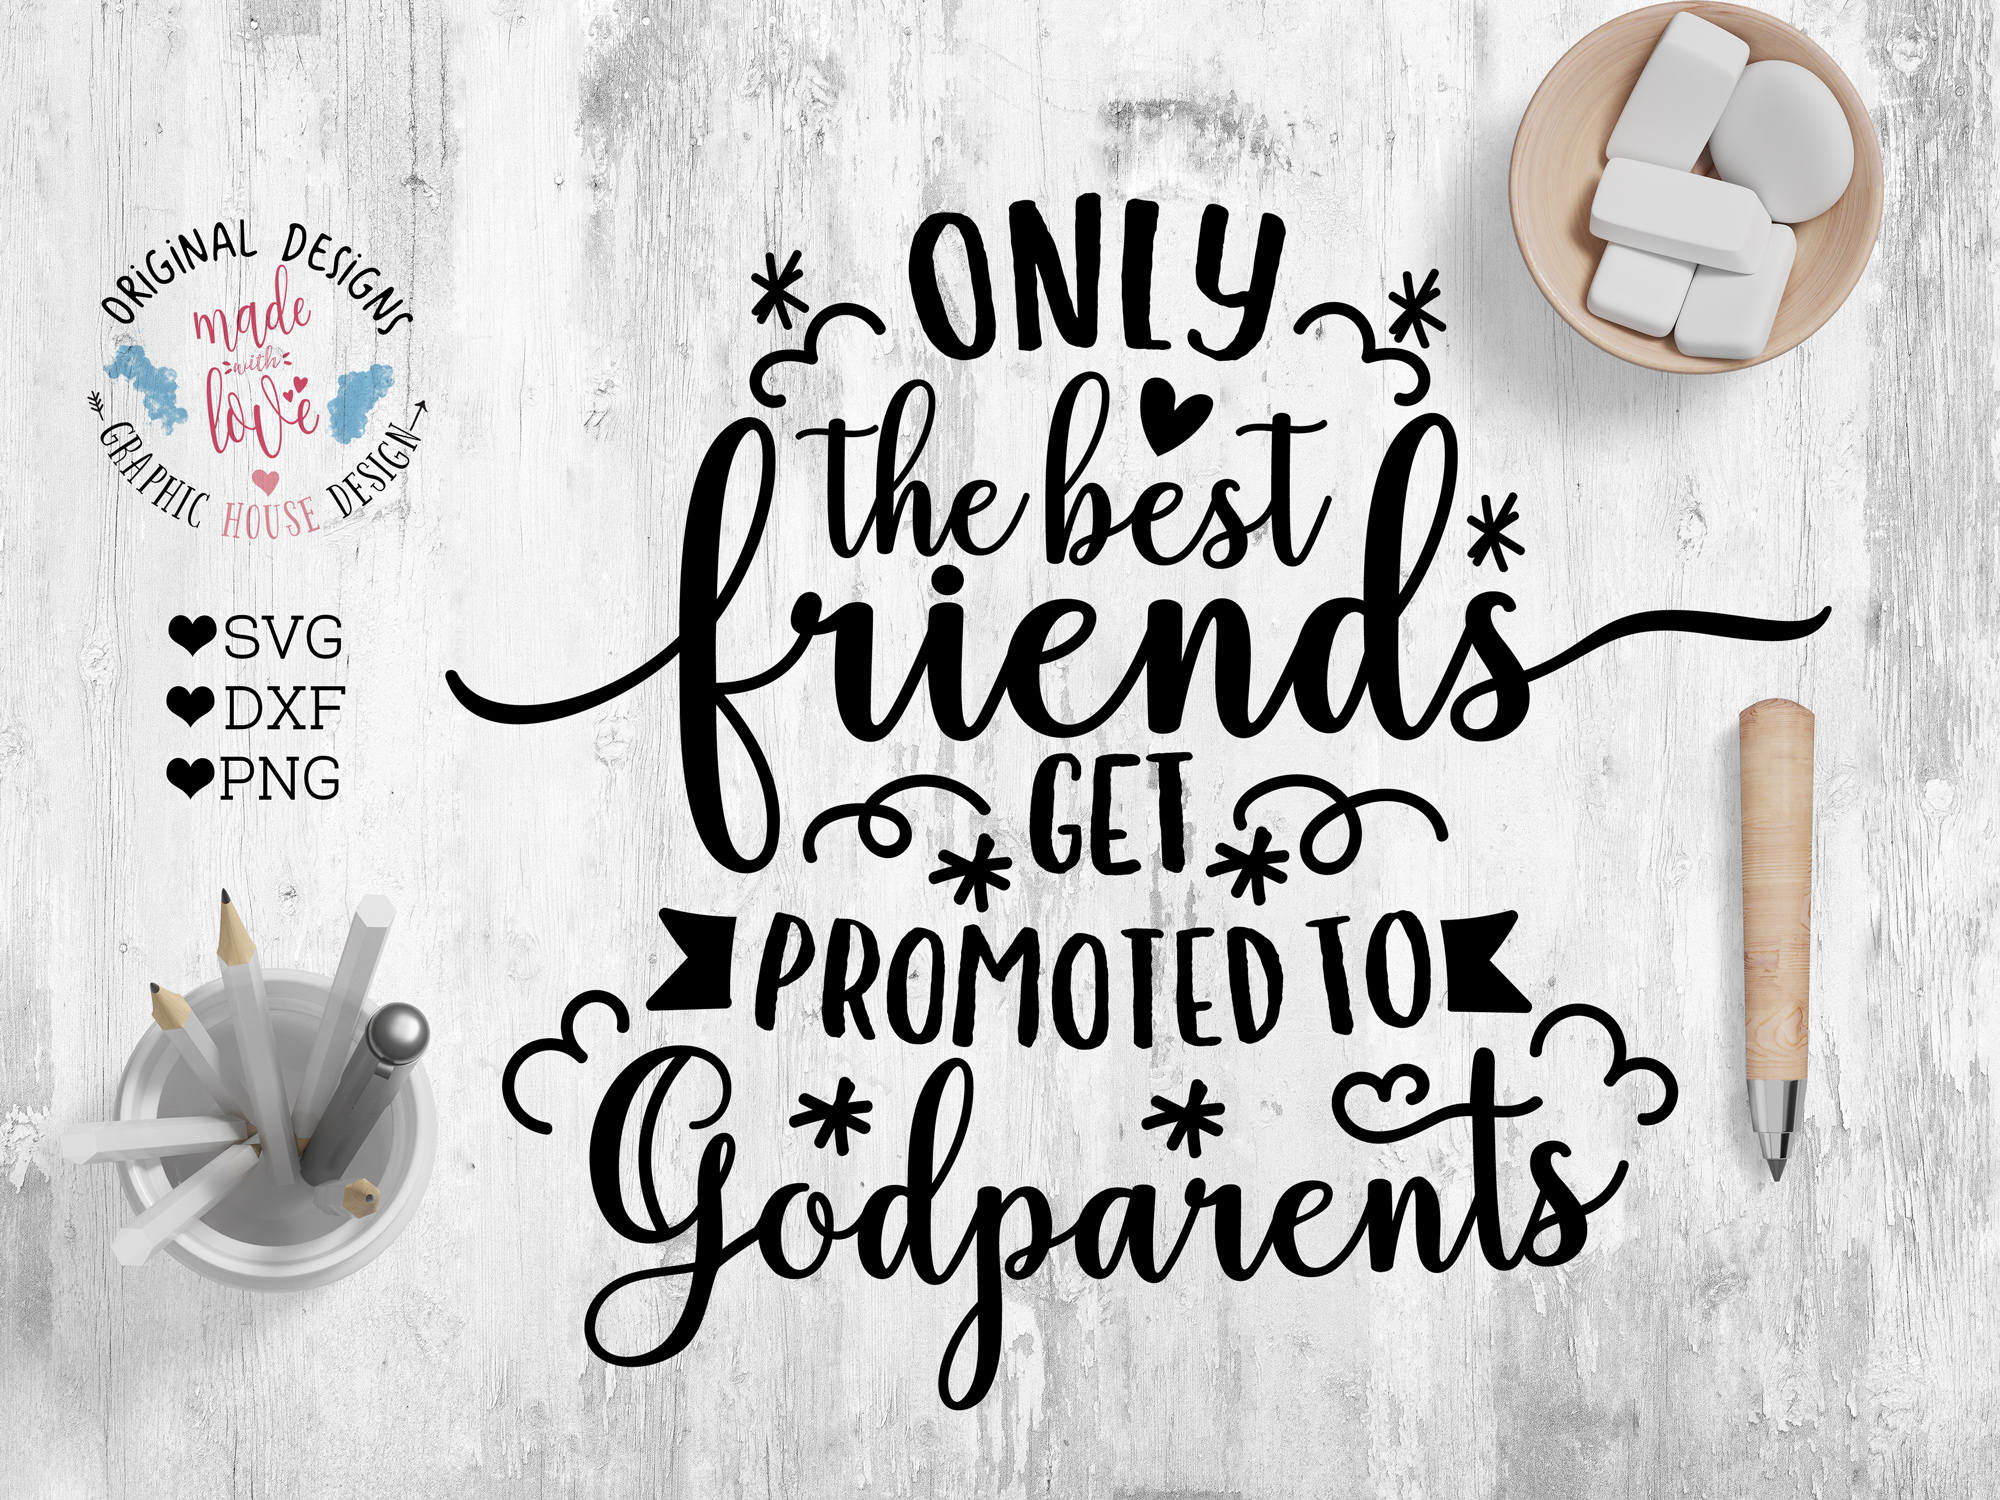 Godmother Quotes For Scrapbooking Quotesgram: Godparents SVG Best Friends SVG Only The Best Friends Get